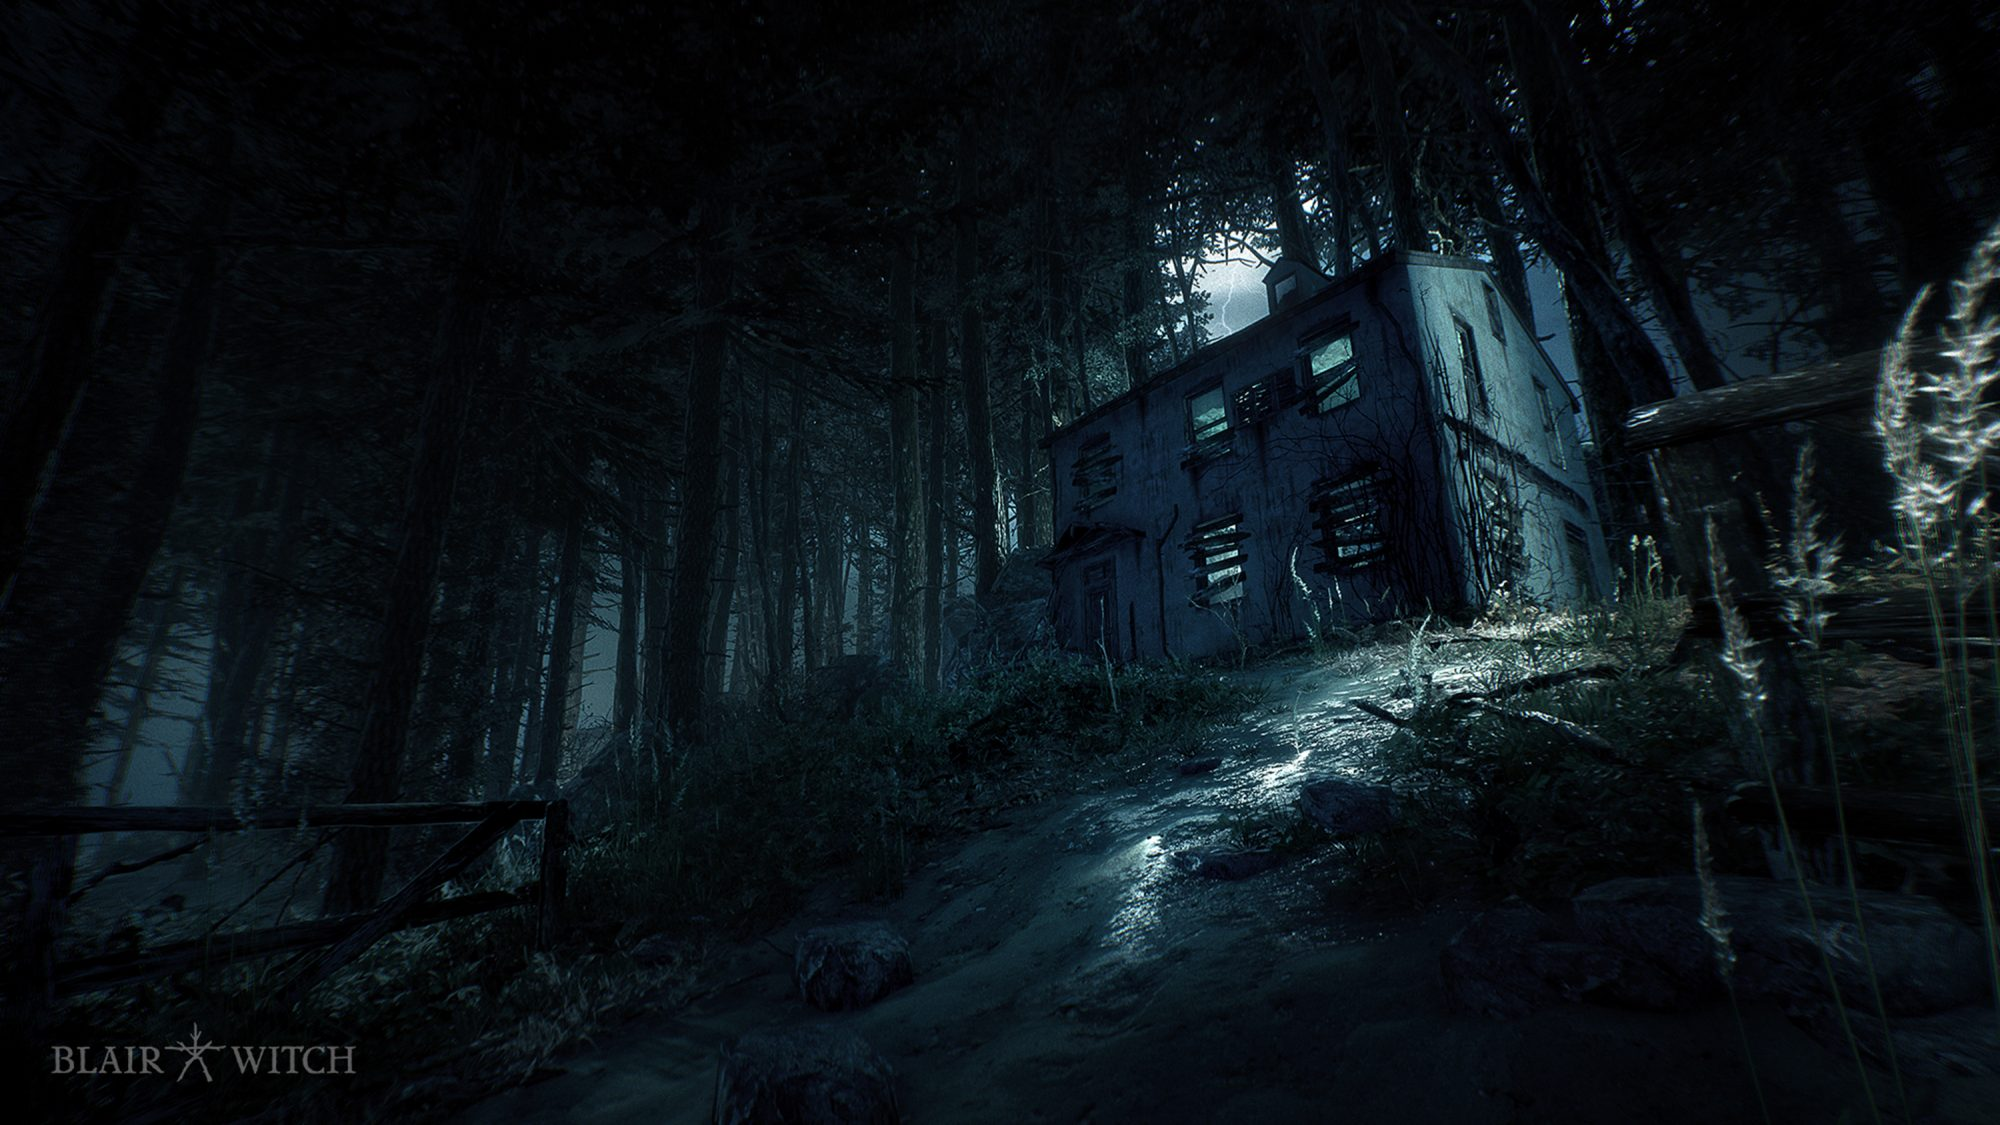 Blair Witch videogame